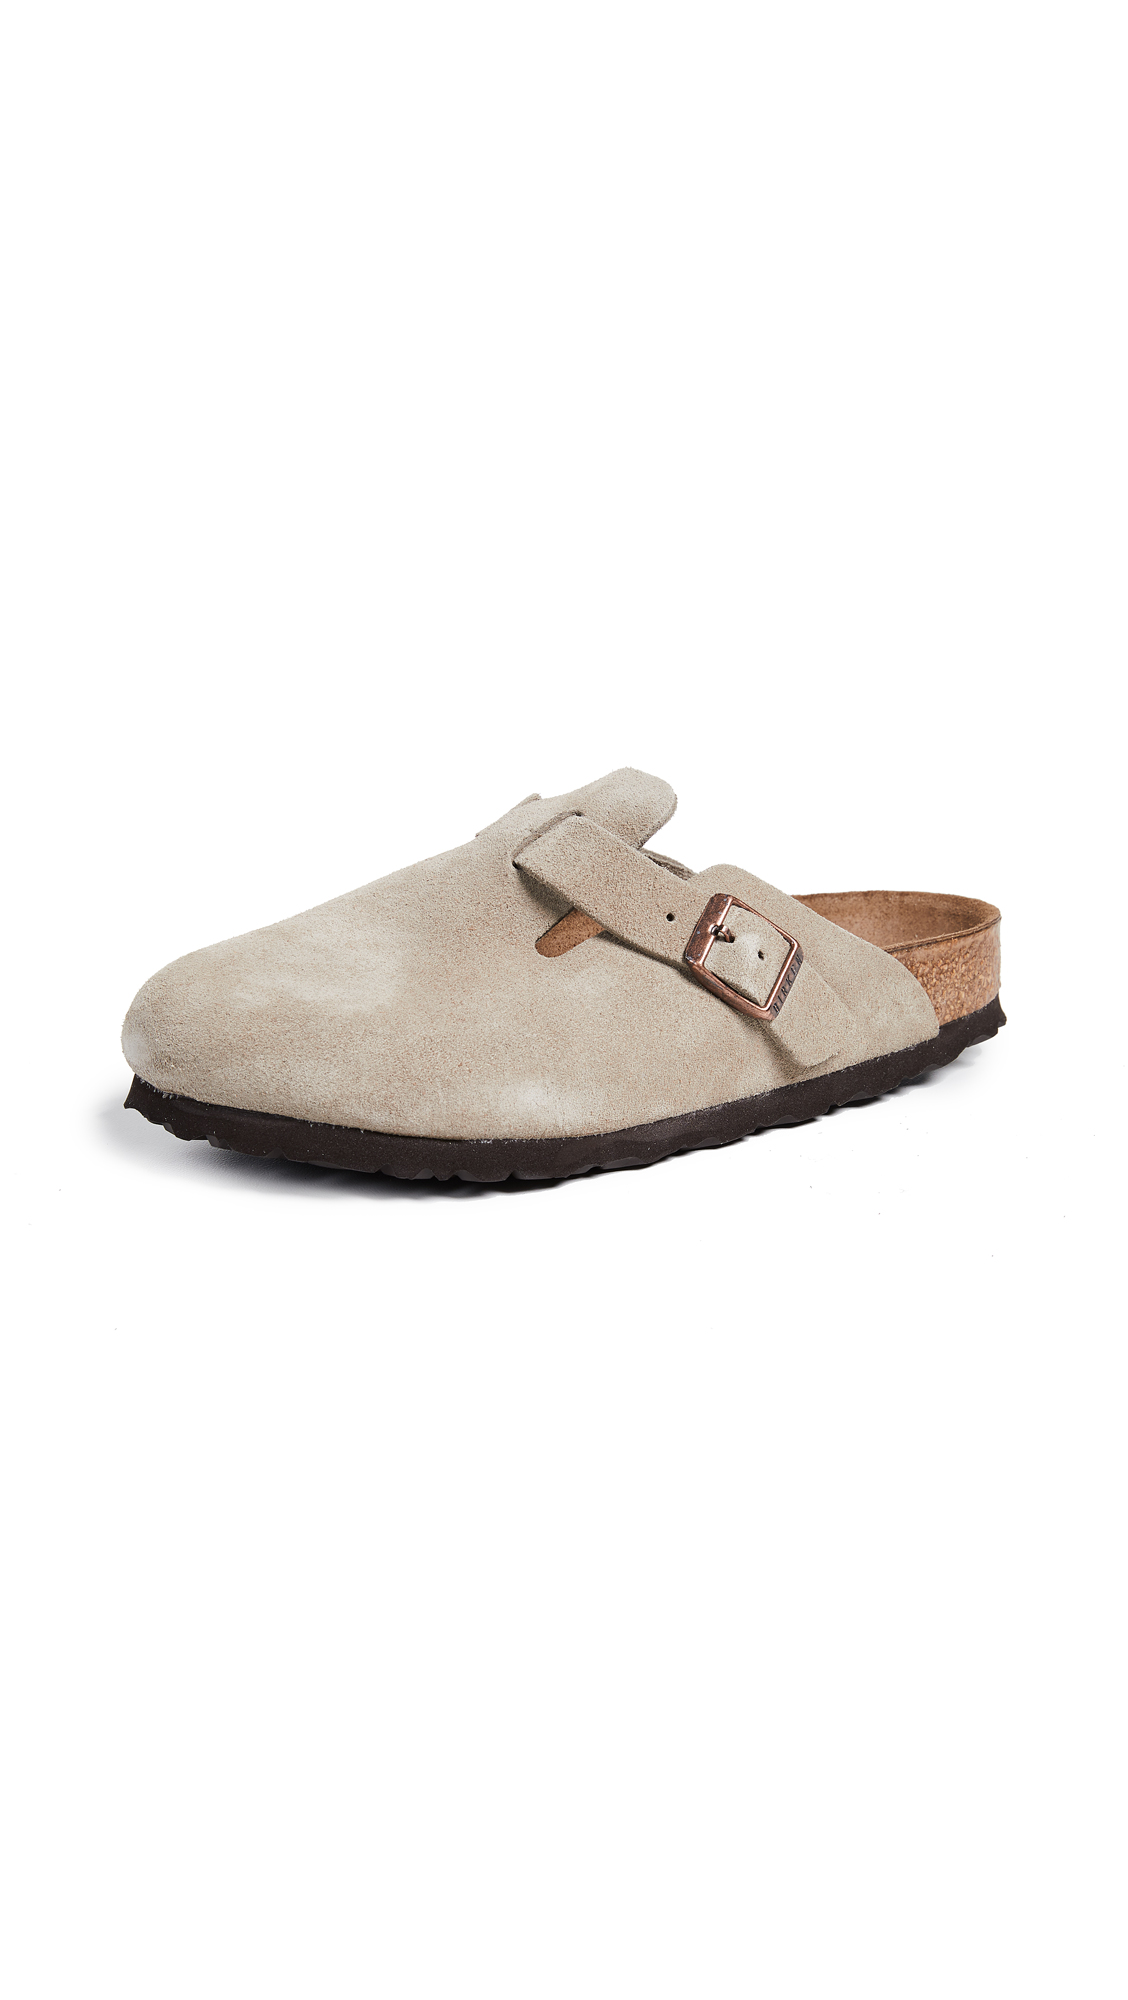 Birkenstock Boston SFB Clogs